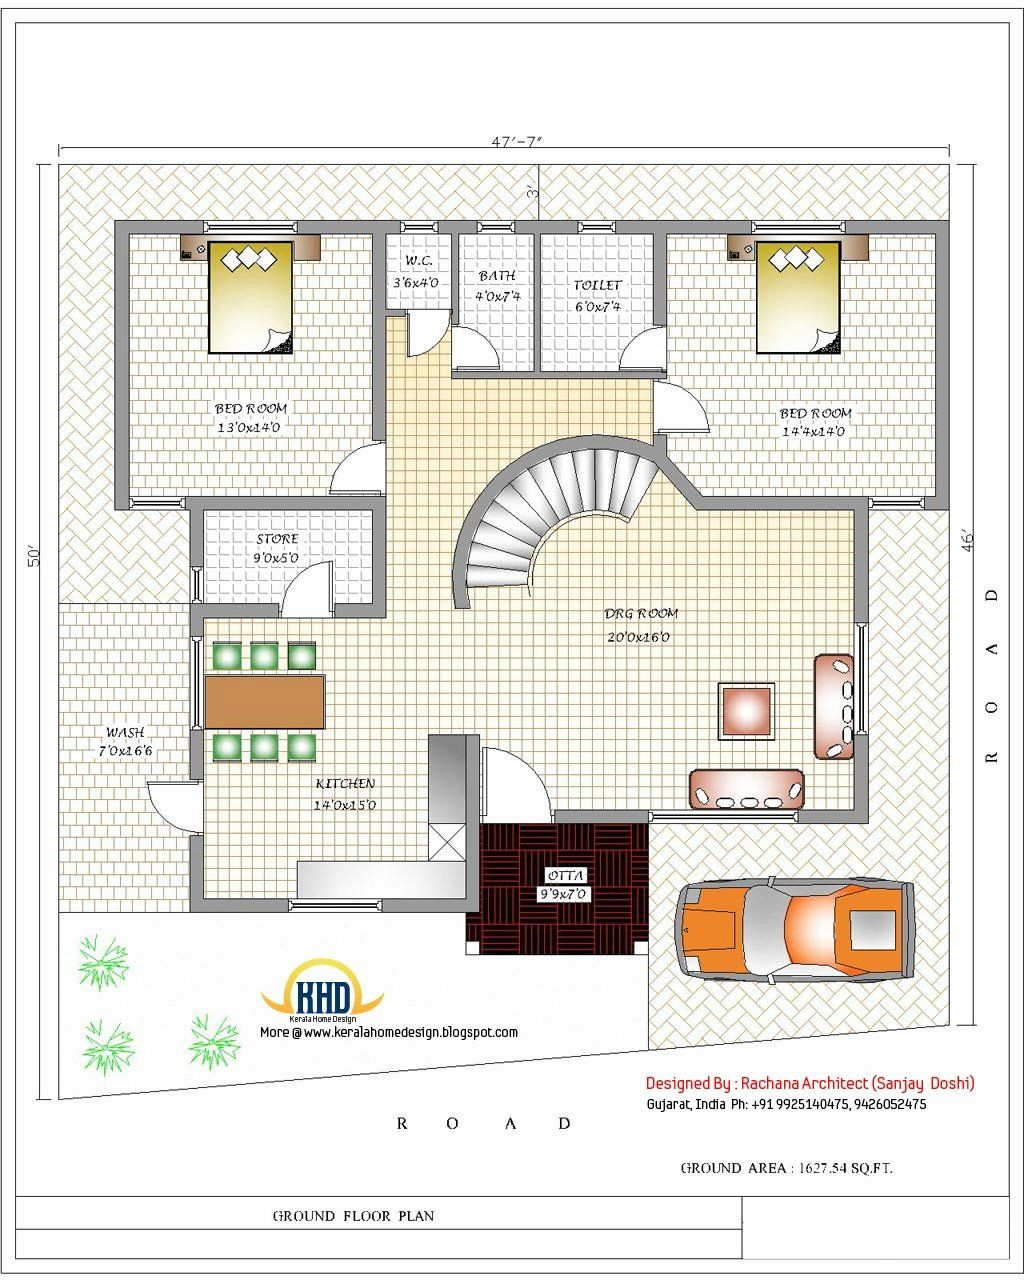 3200 Sq Ft House Plans Awesome 53 Best India House Floor Plans Image Daftar Harga Home Design Floor Plans Tiny House Design Modern House Plans